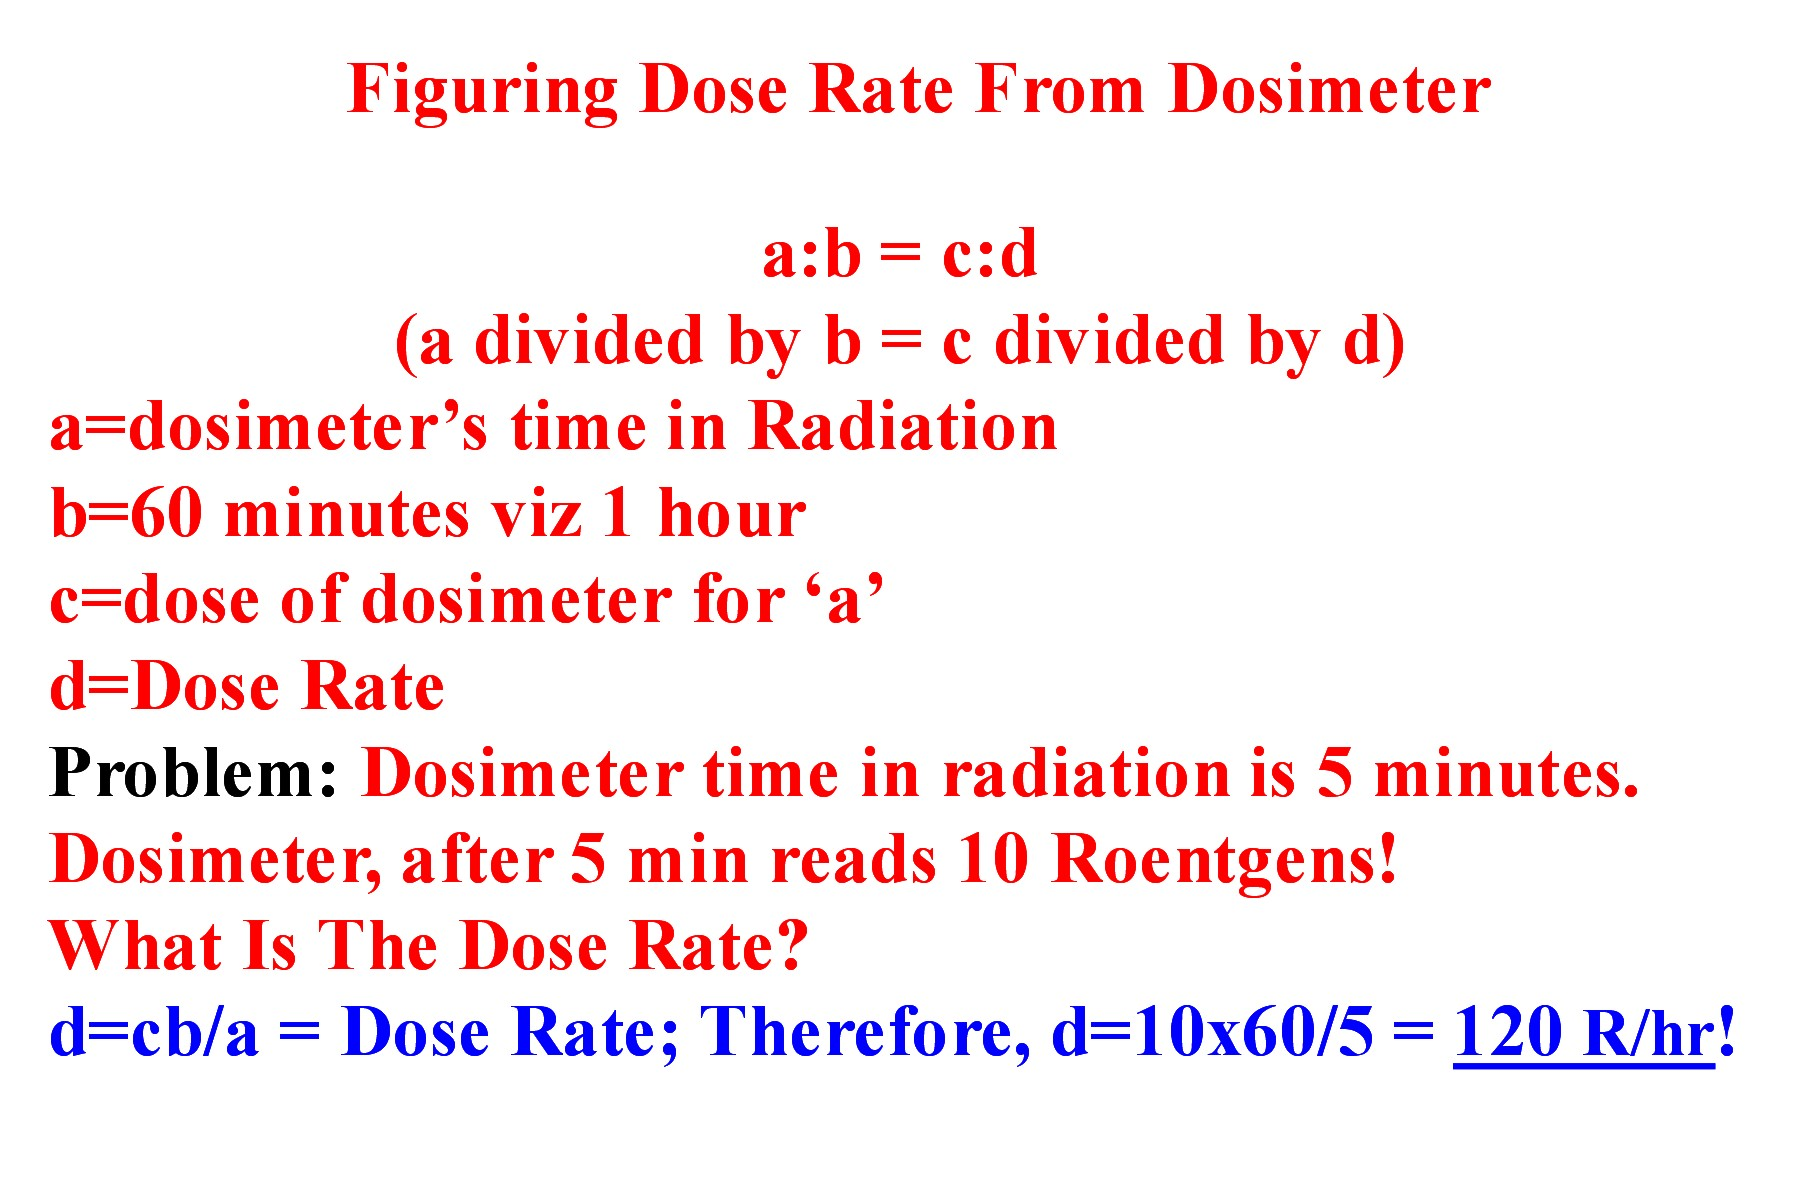 Using Your Dosimeter To Find The Dose Rate!